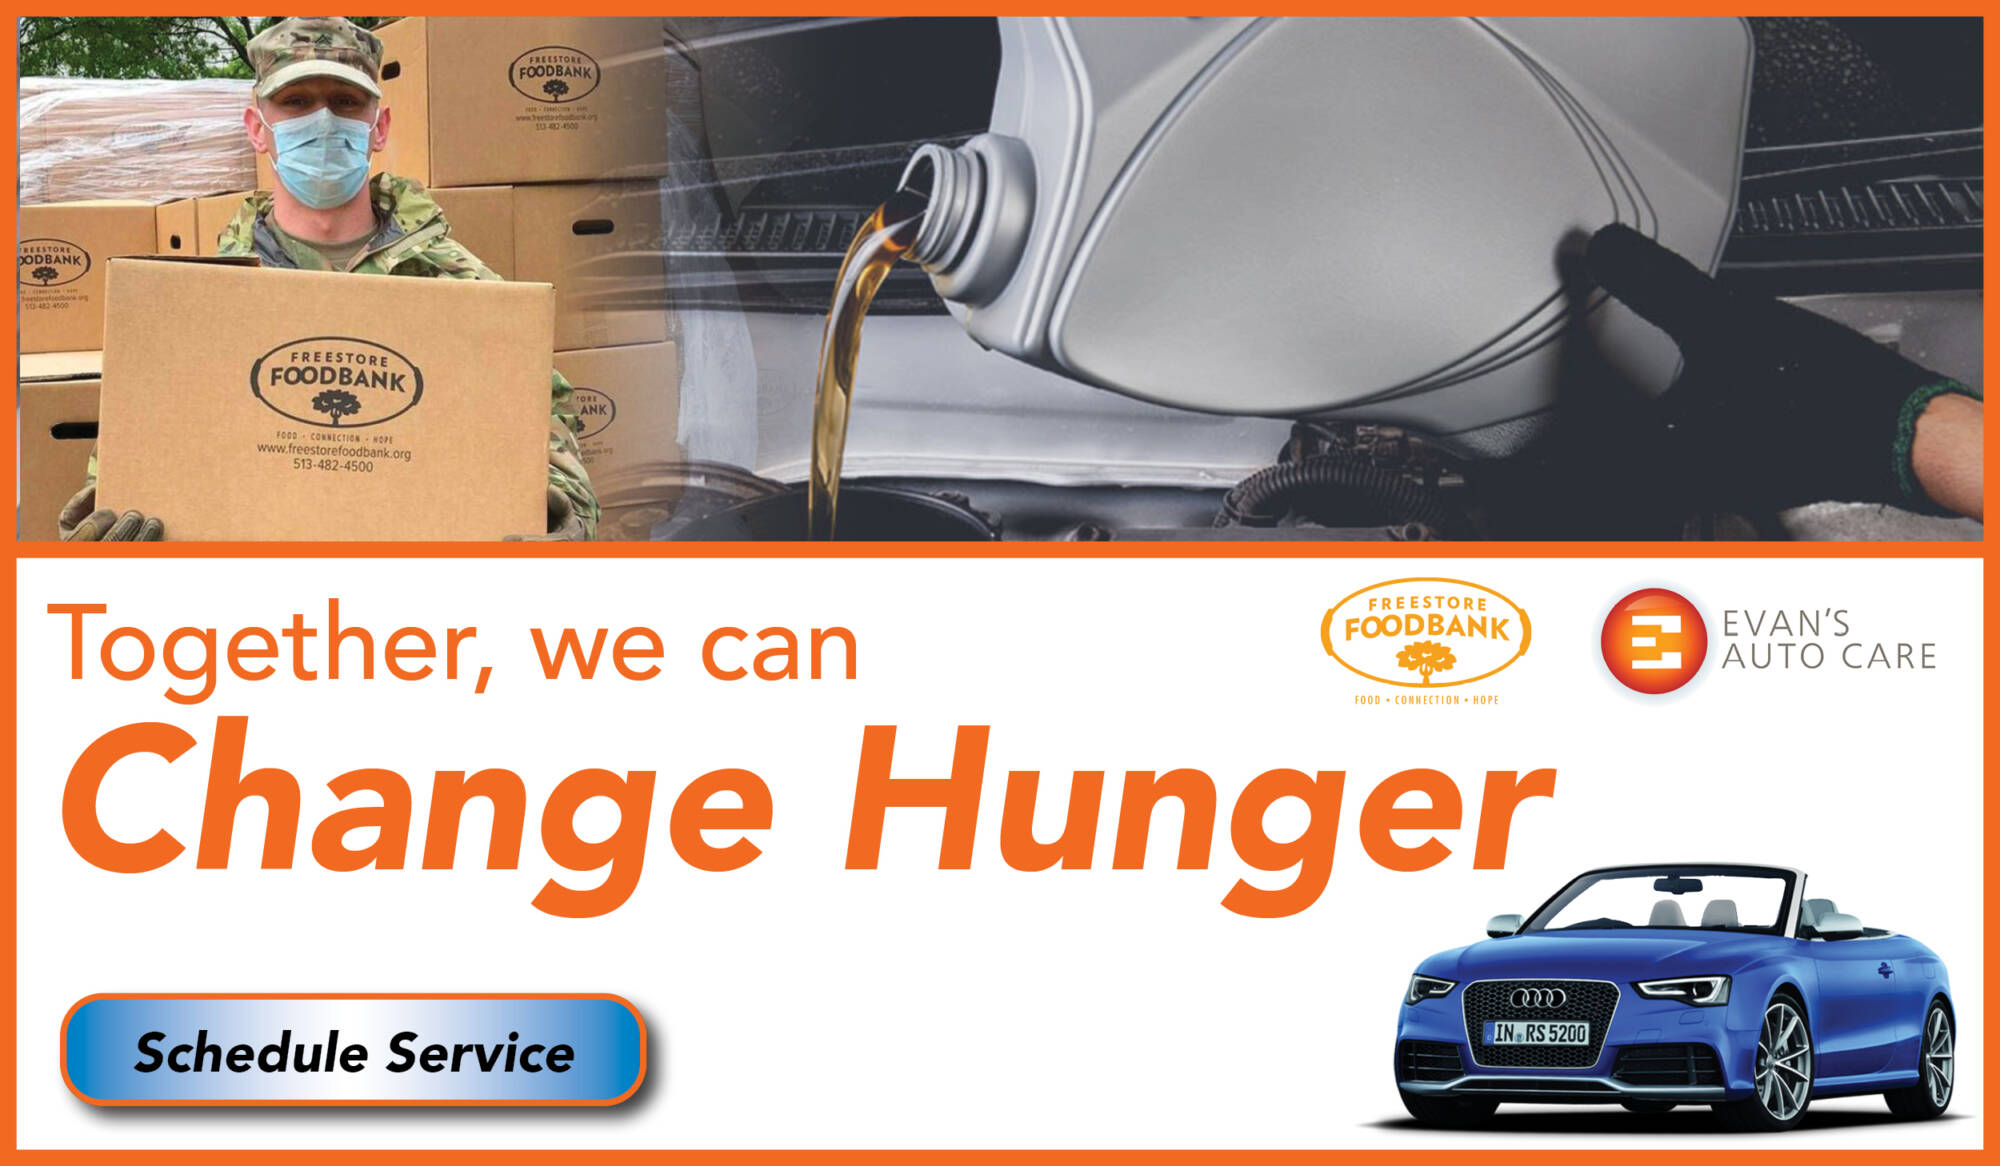 Change Hunger with Evan's Auto Care